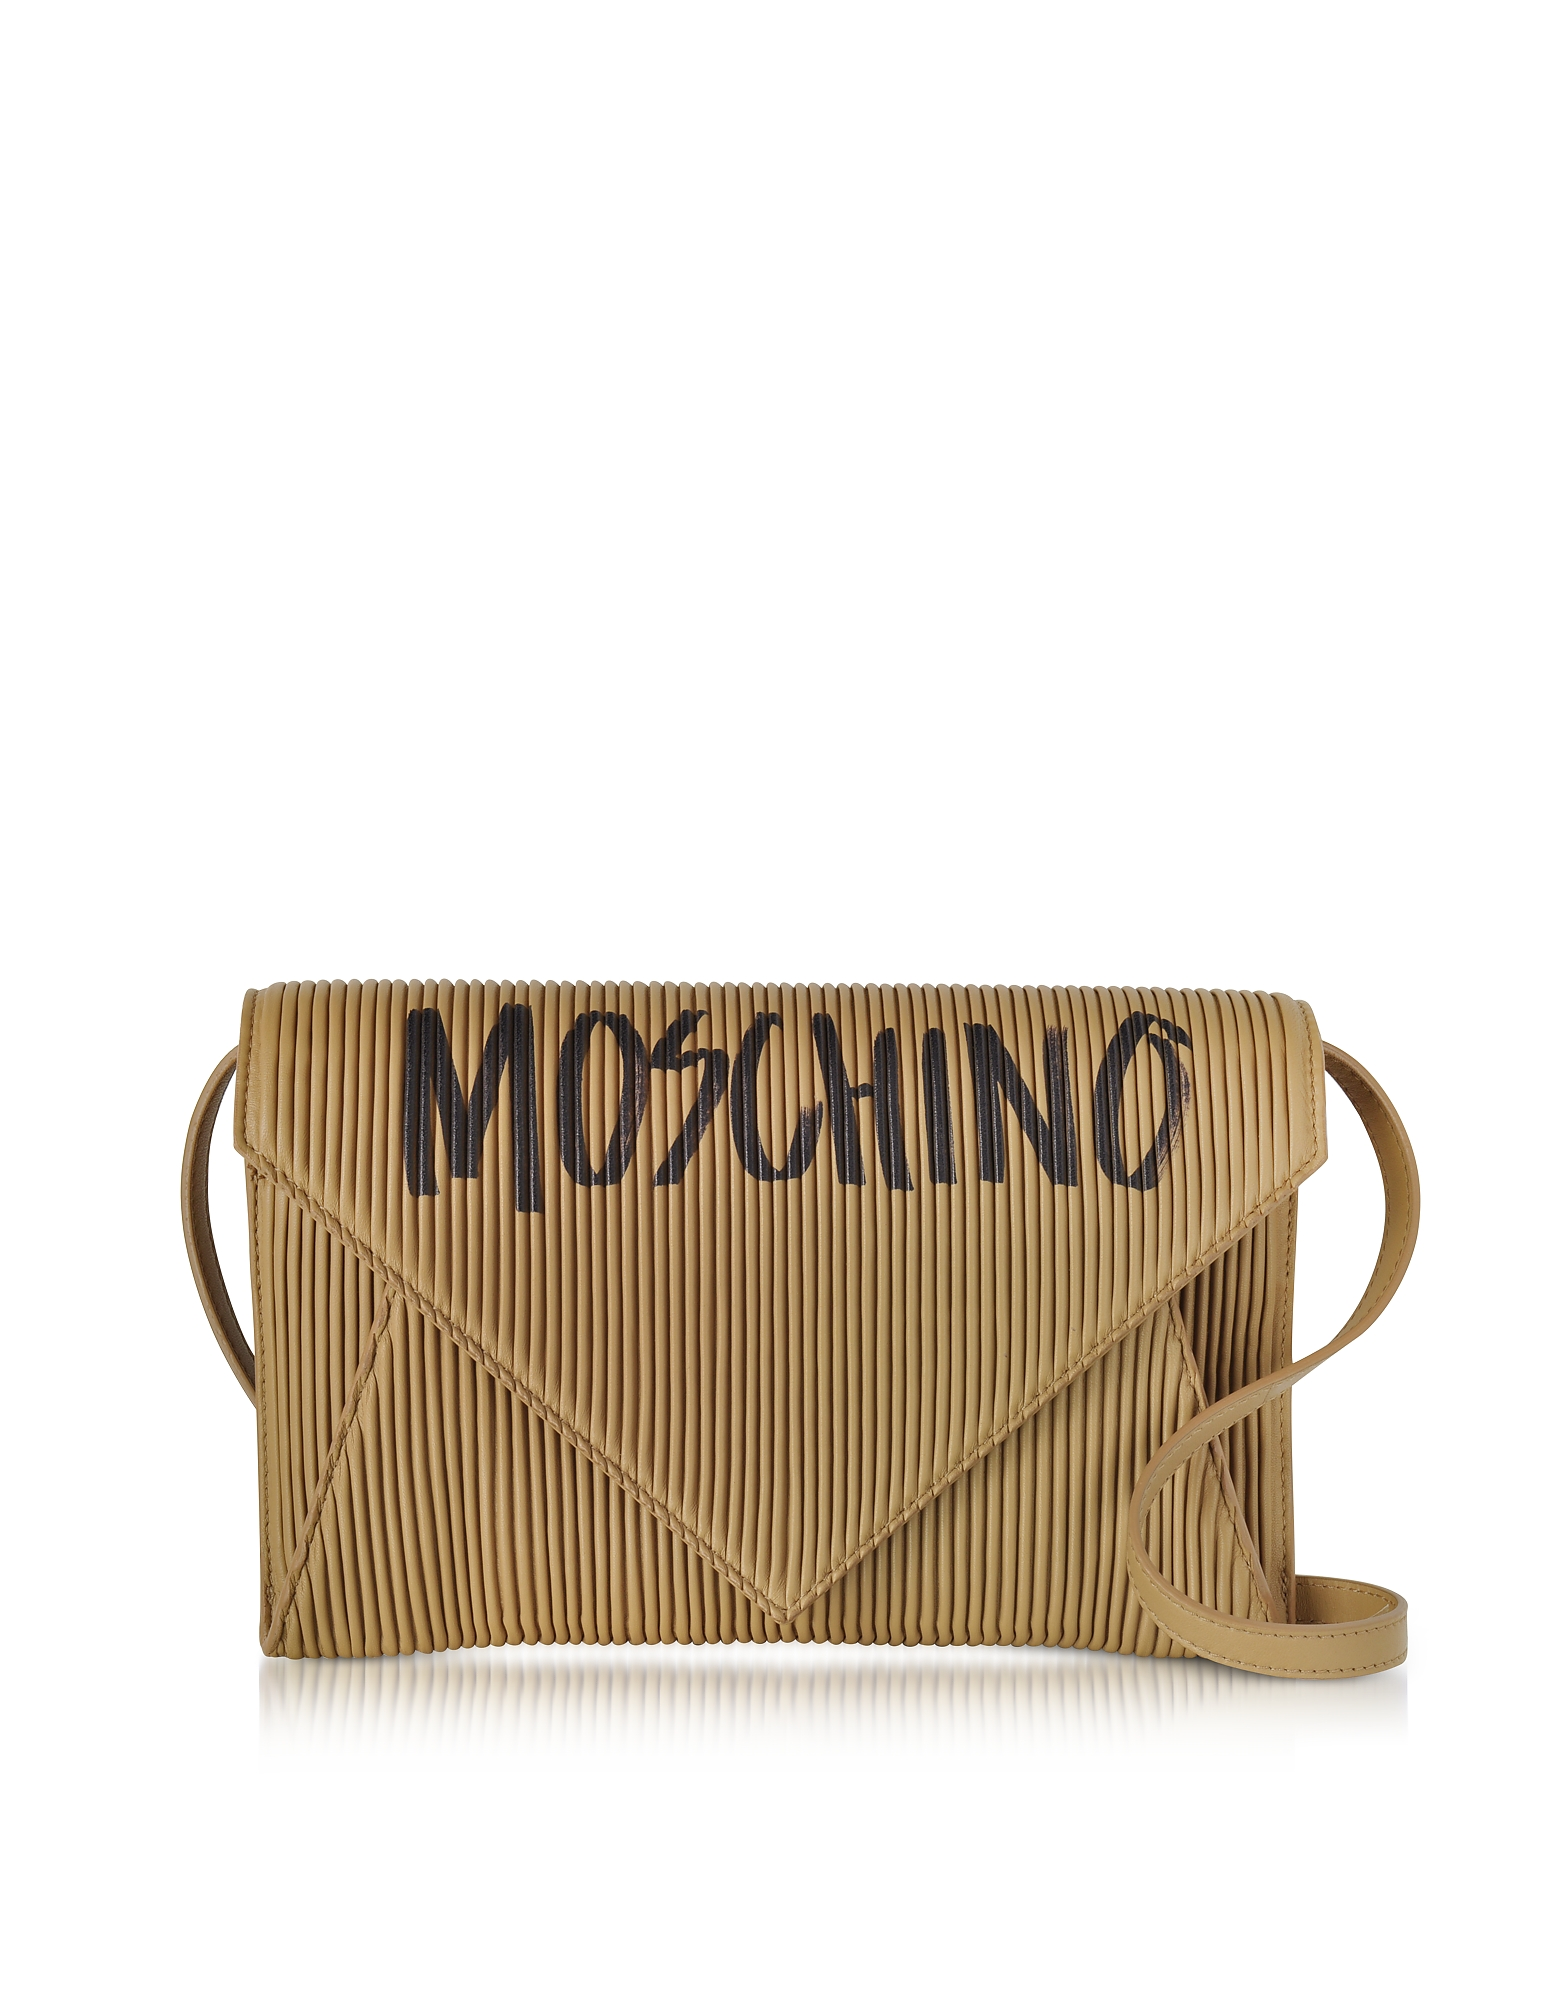 Moschino Brown Pleated Leather Envelope Shoulder Bag